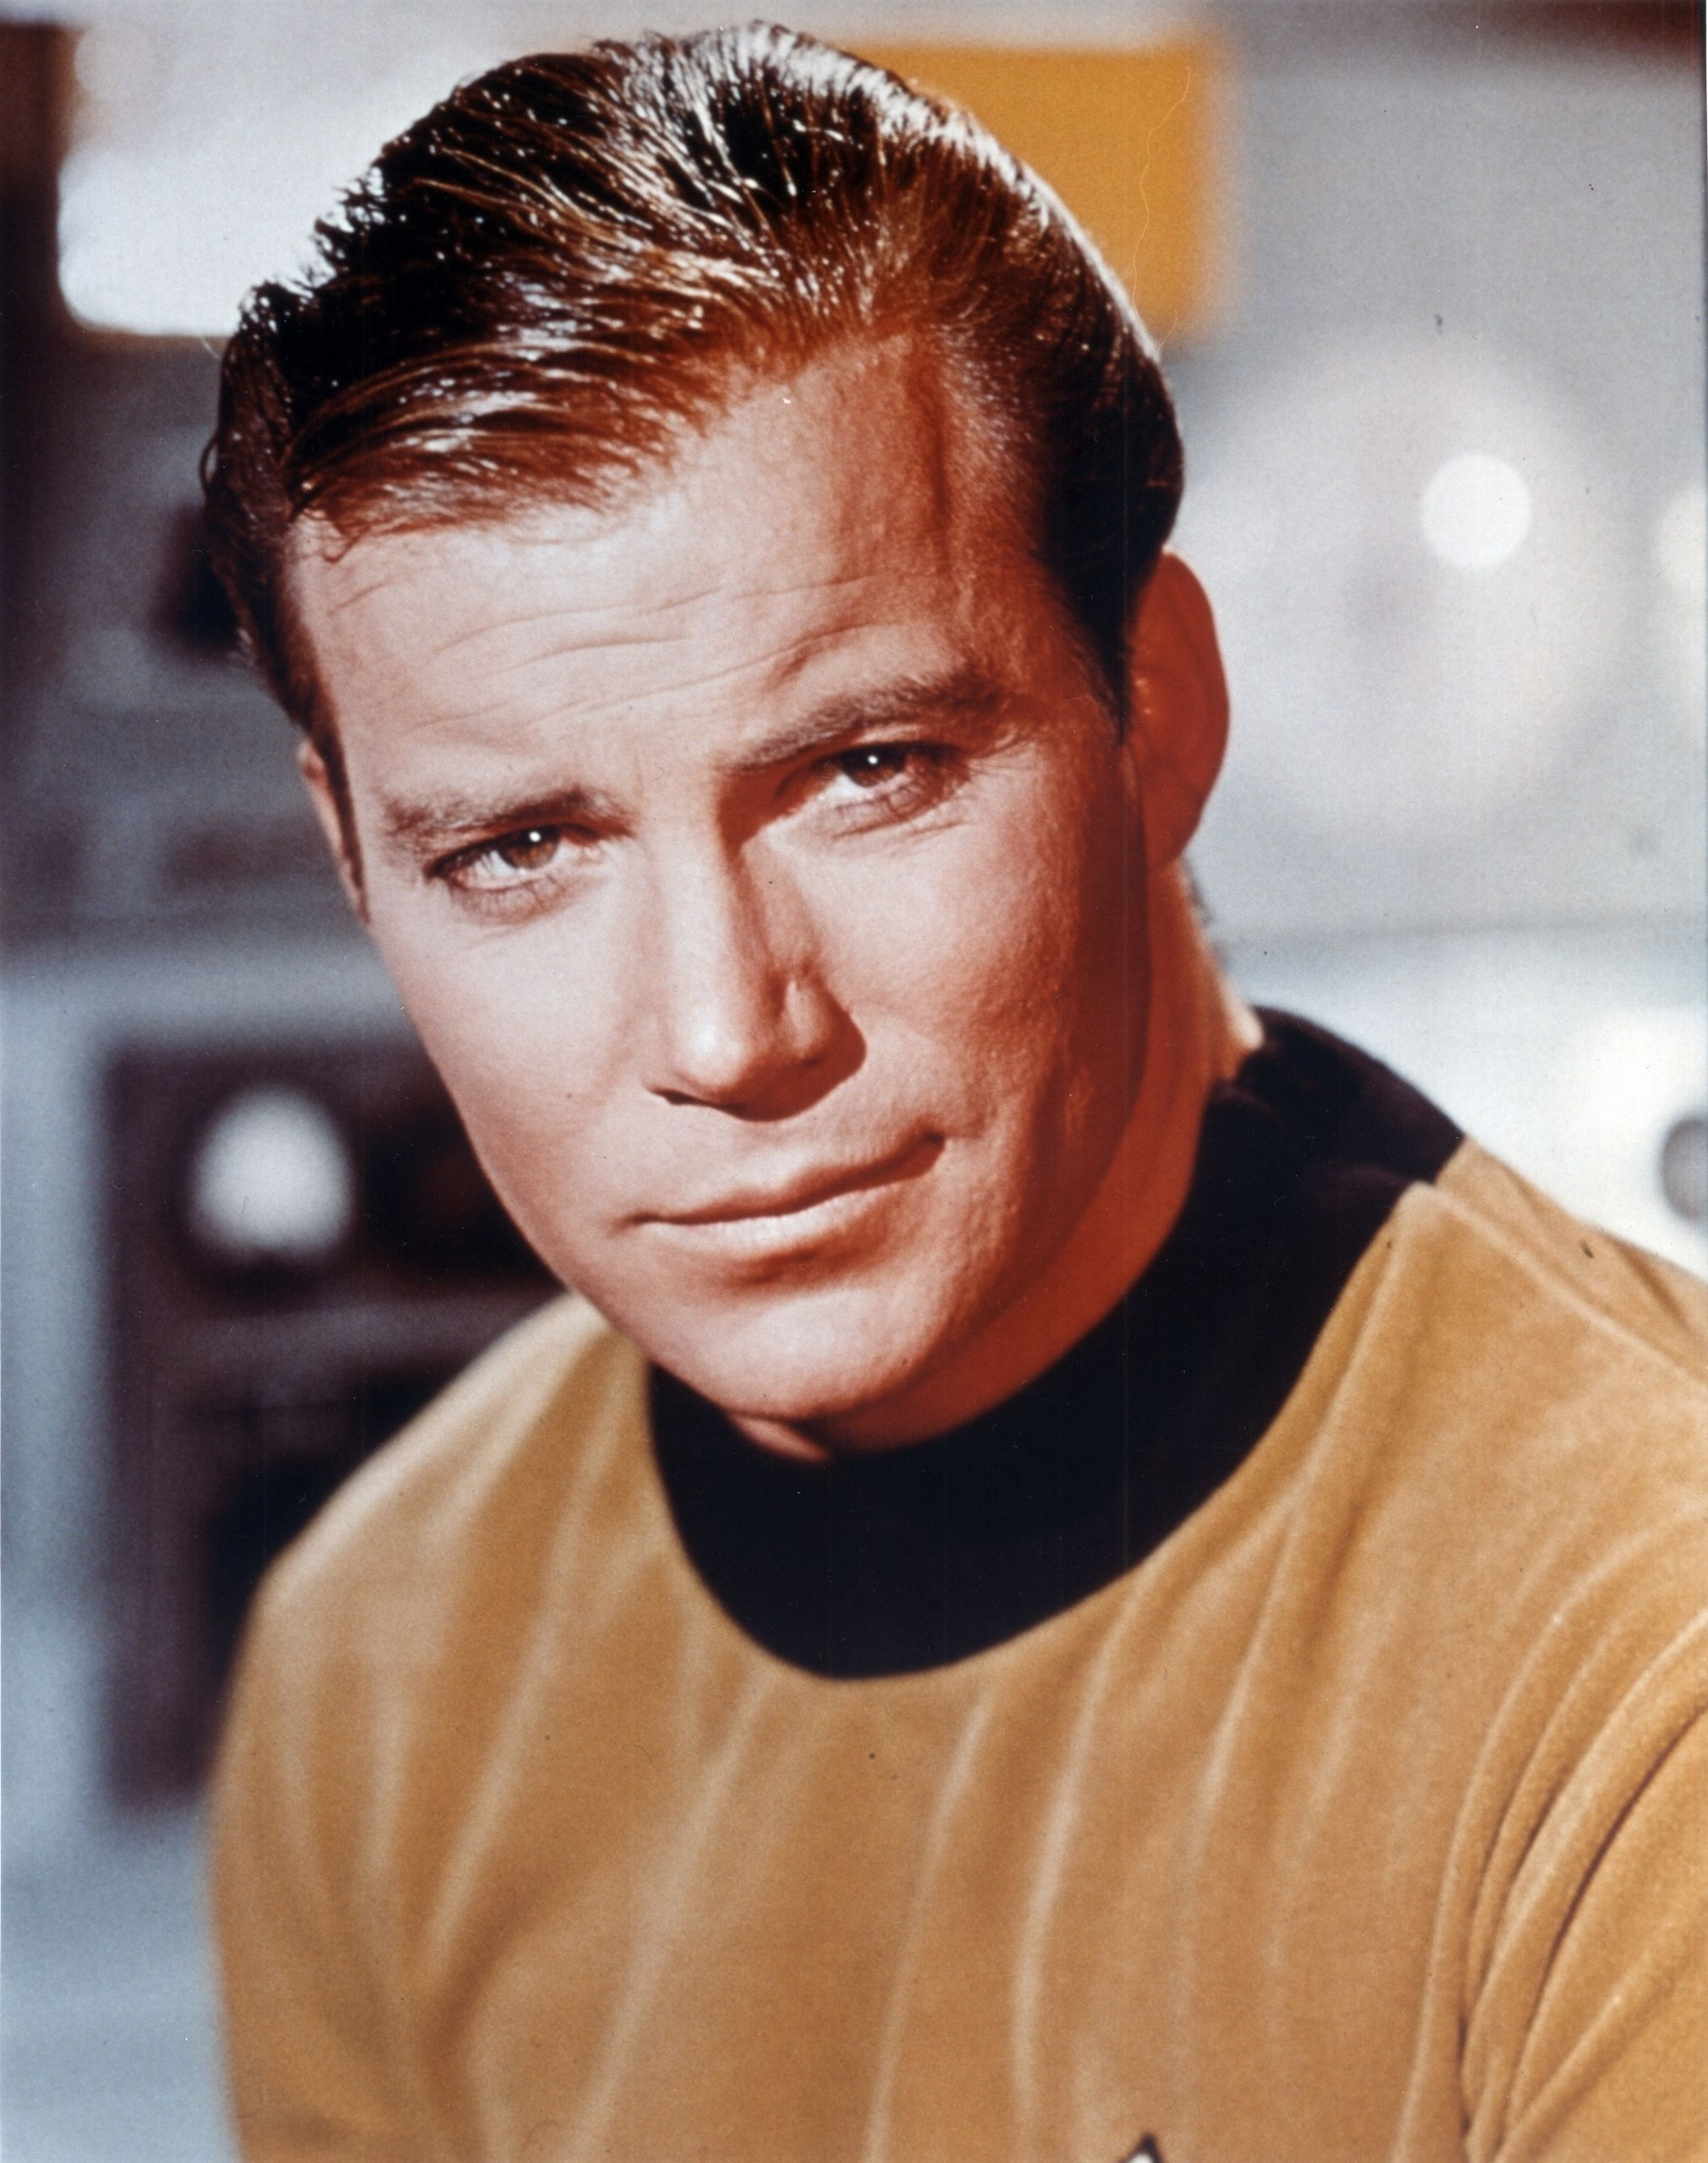 Discussion on this topic: Anna Massey, william-shatner/